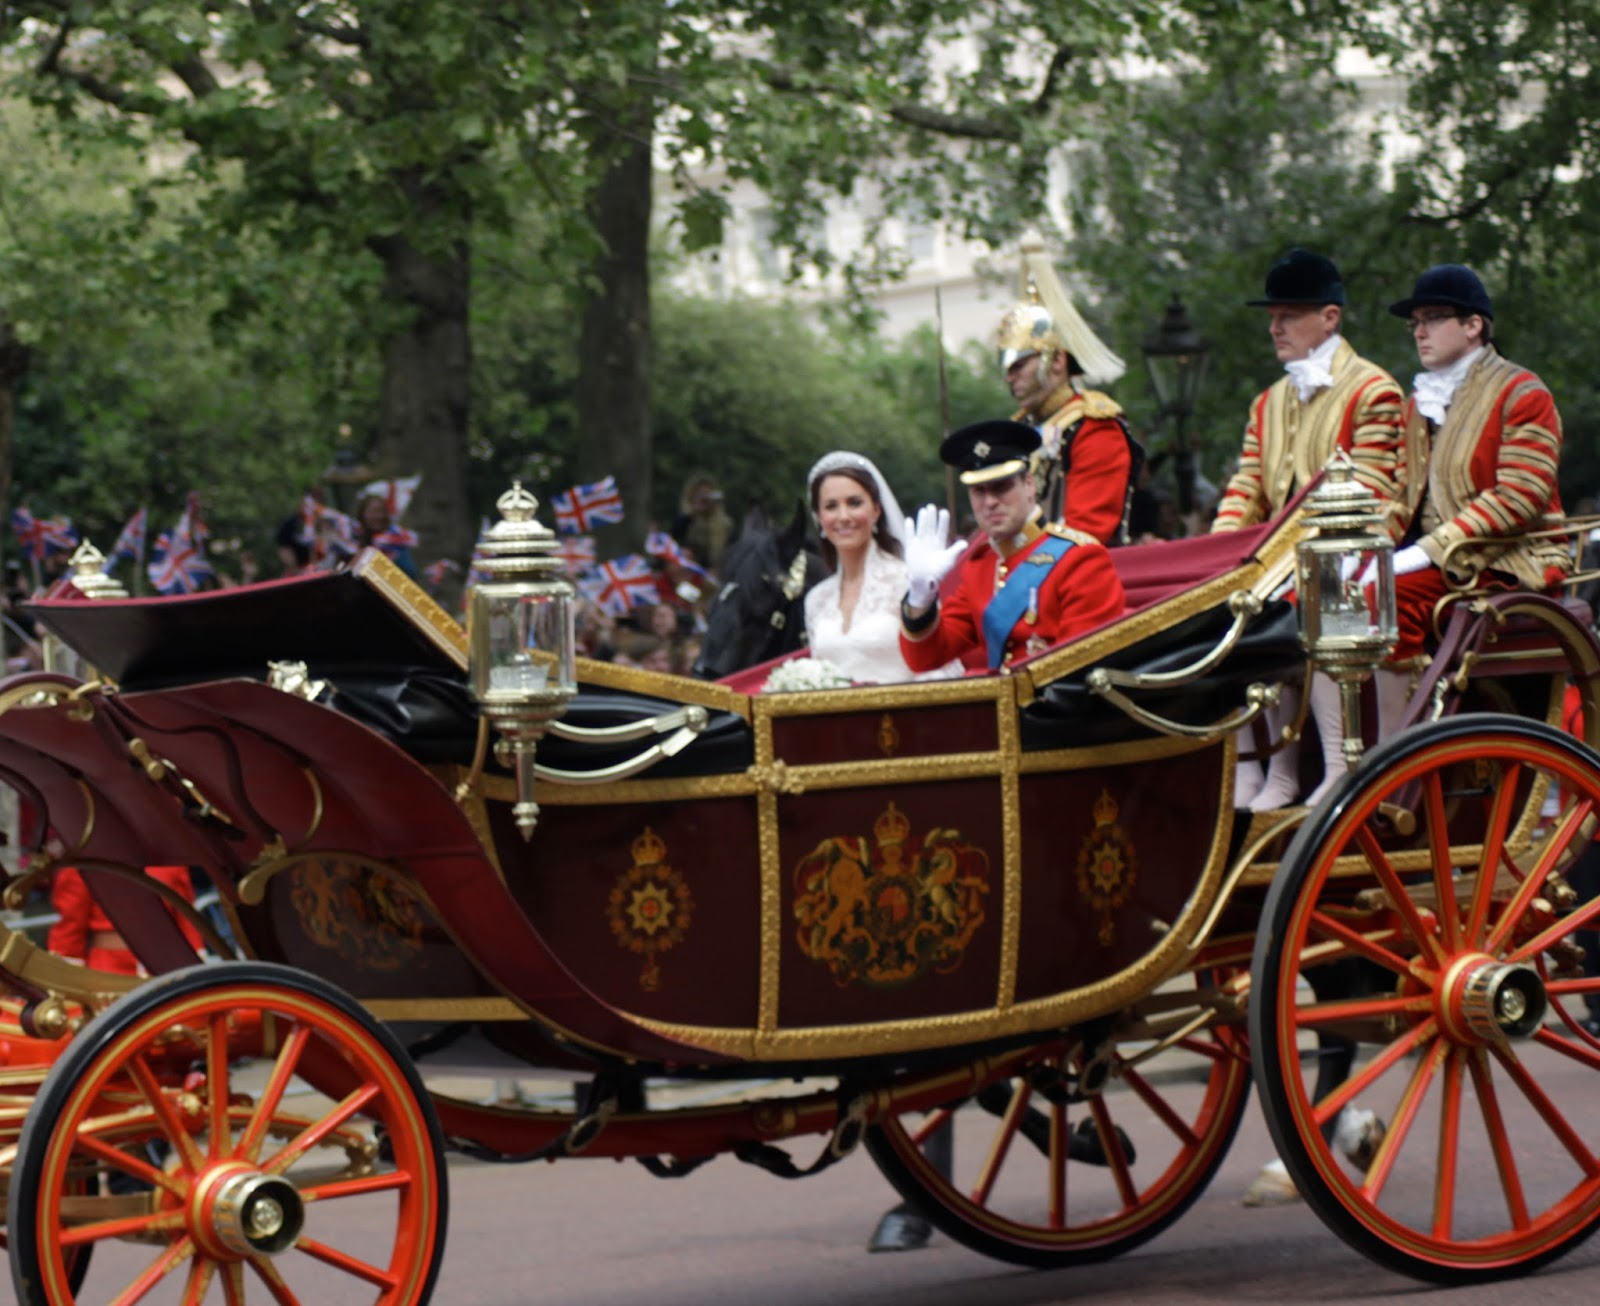 unusual historicals weddings in history royal weddings in  the most recent english royal wedding